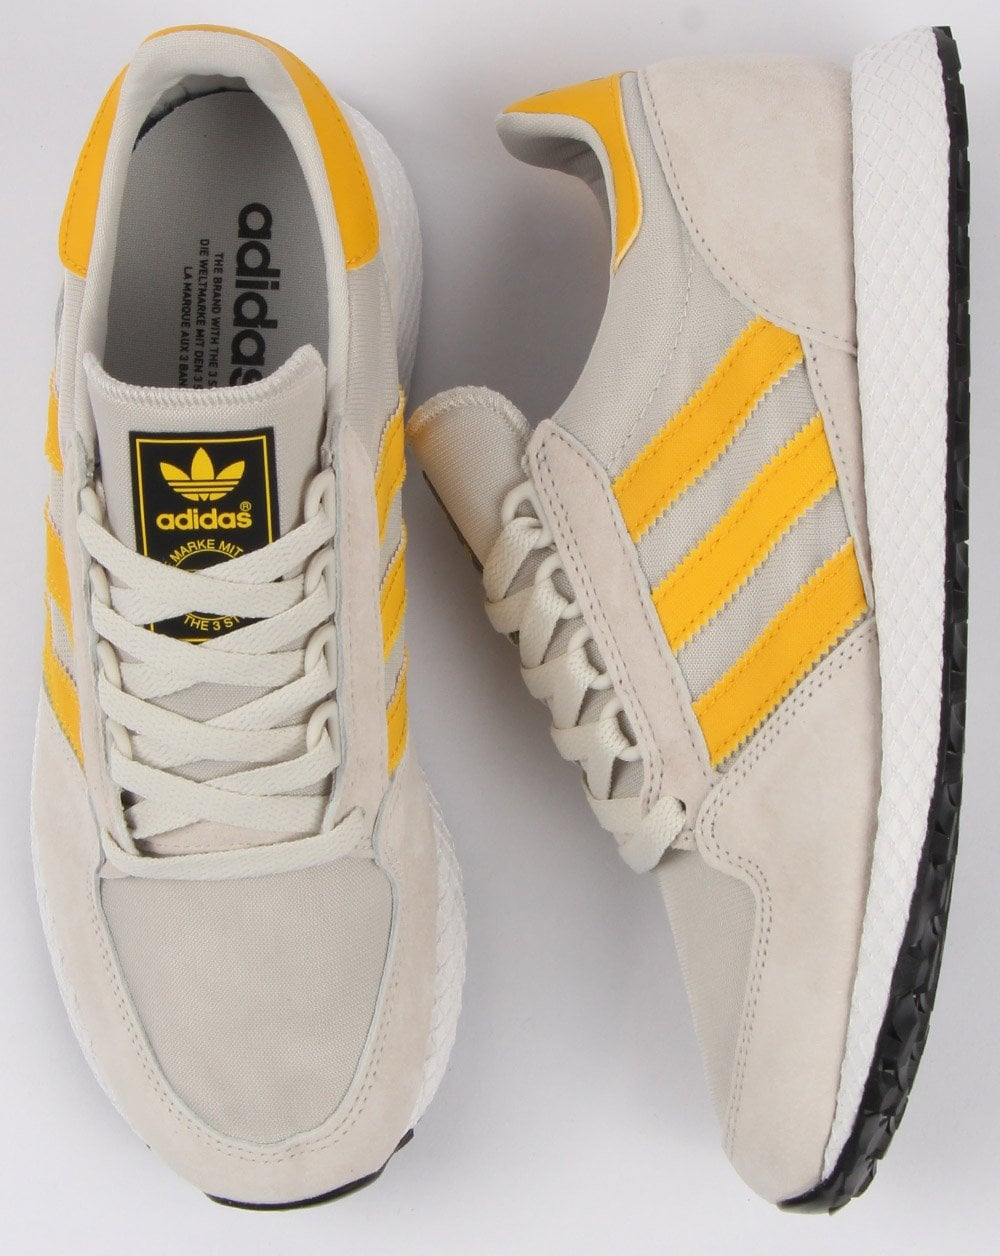 15cb3ff901b Adidas Forest Grove Trainers Raw White Yellow - Shop Adidas At 80sCC